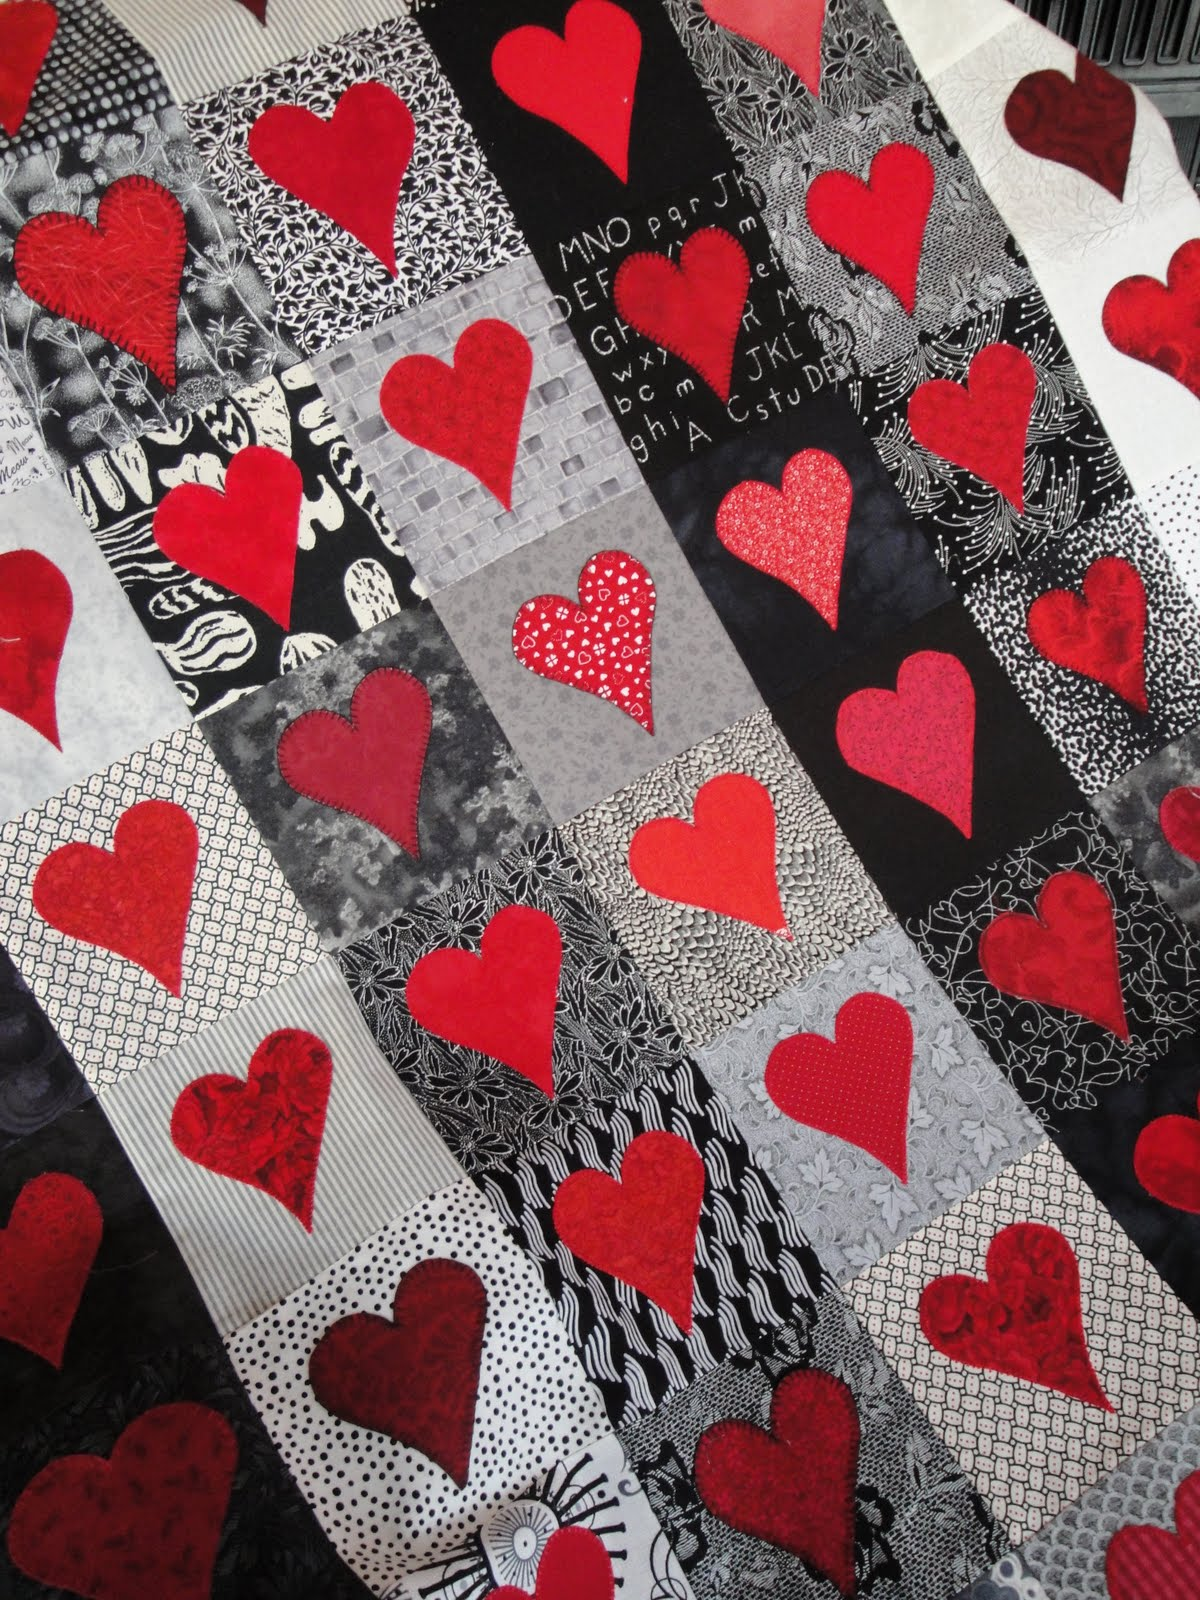 Quilt Patterns Heart Free : Free Quilt, Craft and Sewing Patterns: Links and Tutorials *With Heart and Hands*: Free Heart ...